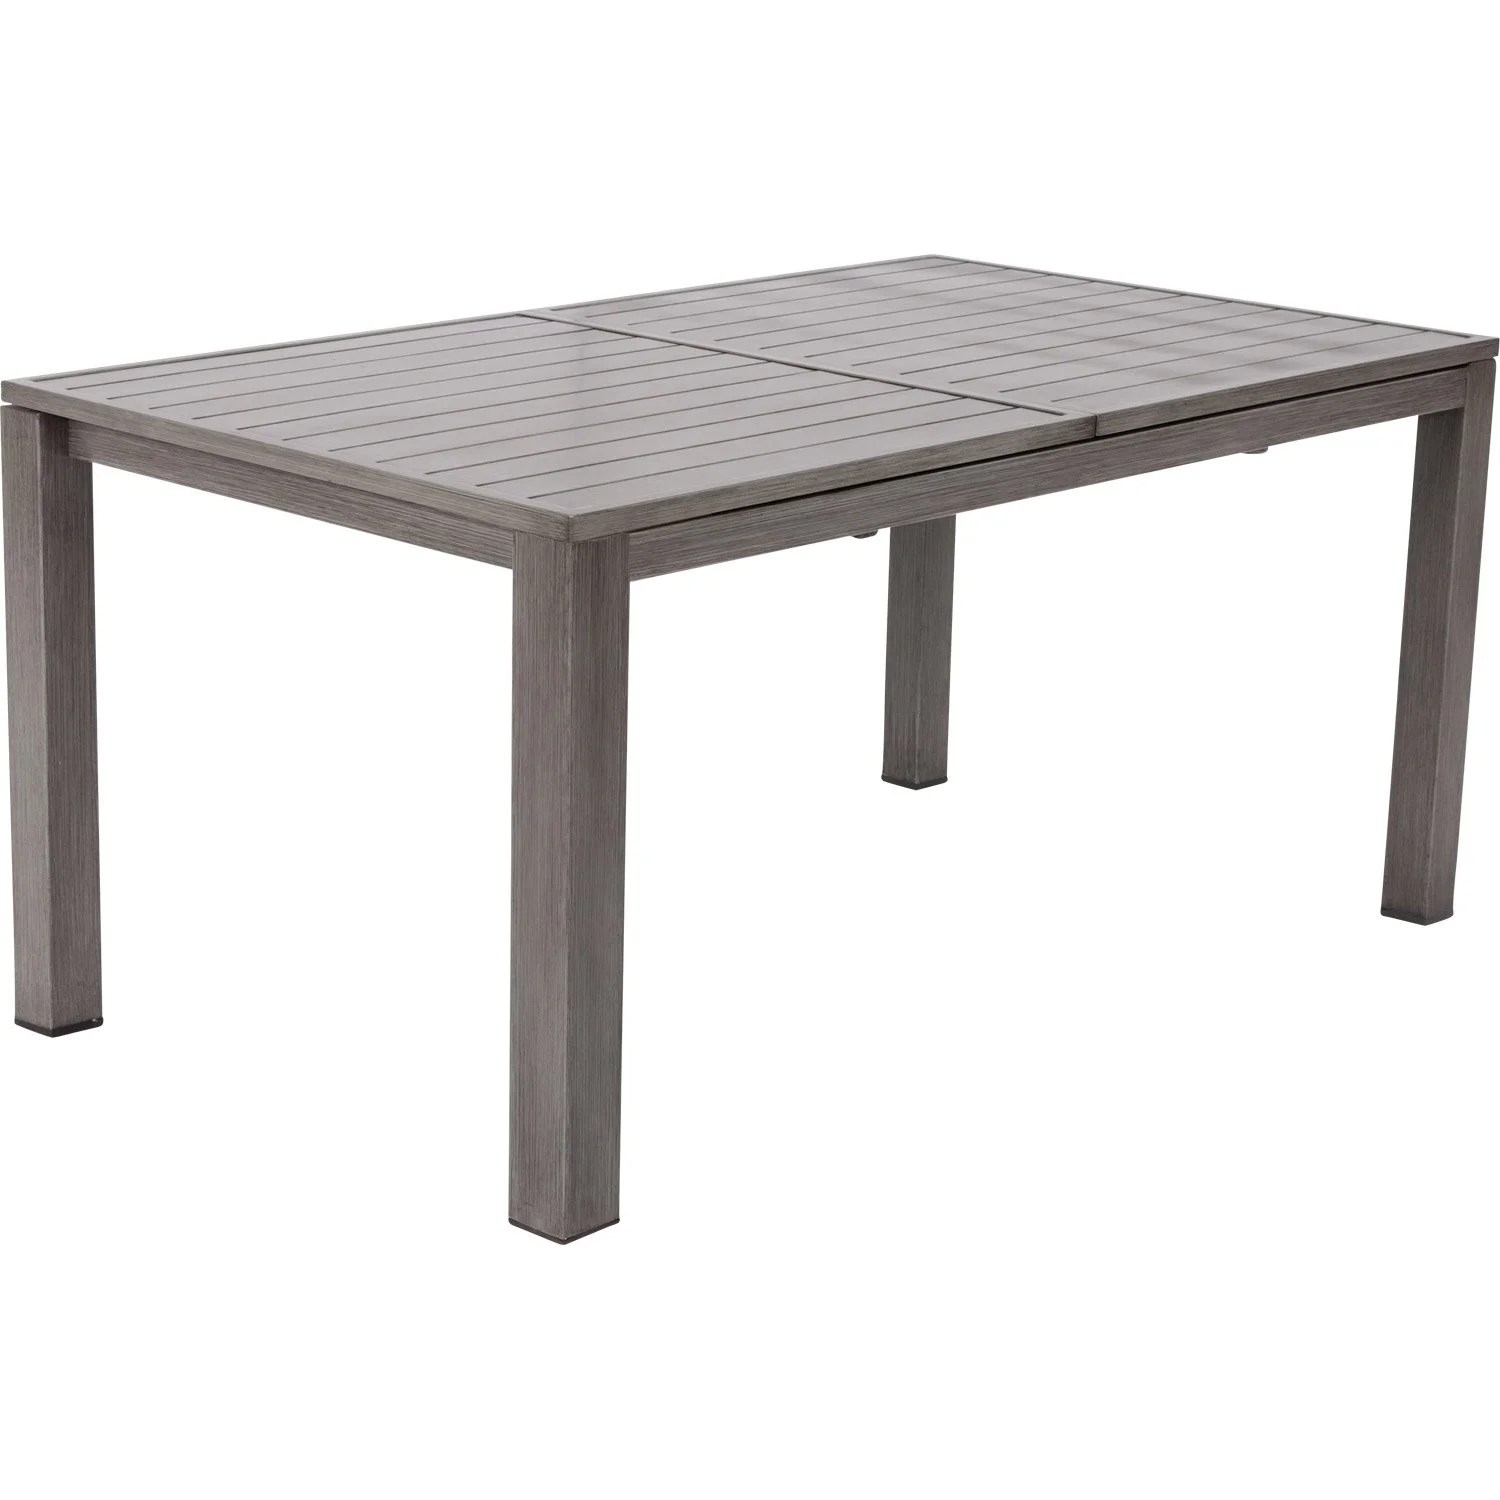 Leroy Merlin Table Exterieur Table De Jardin Naterial Antibes Rectangulaire Gris Look